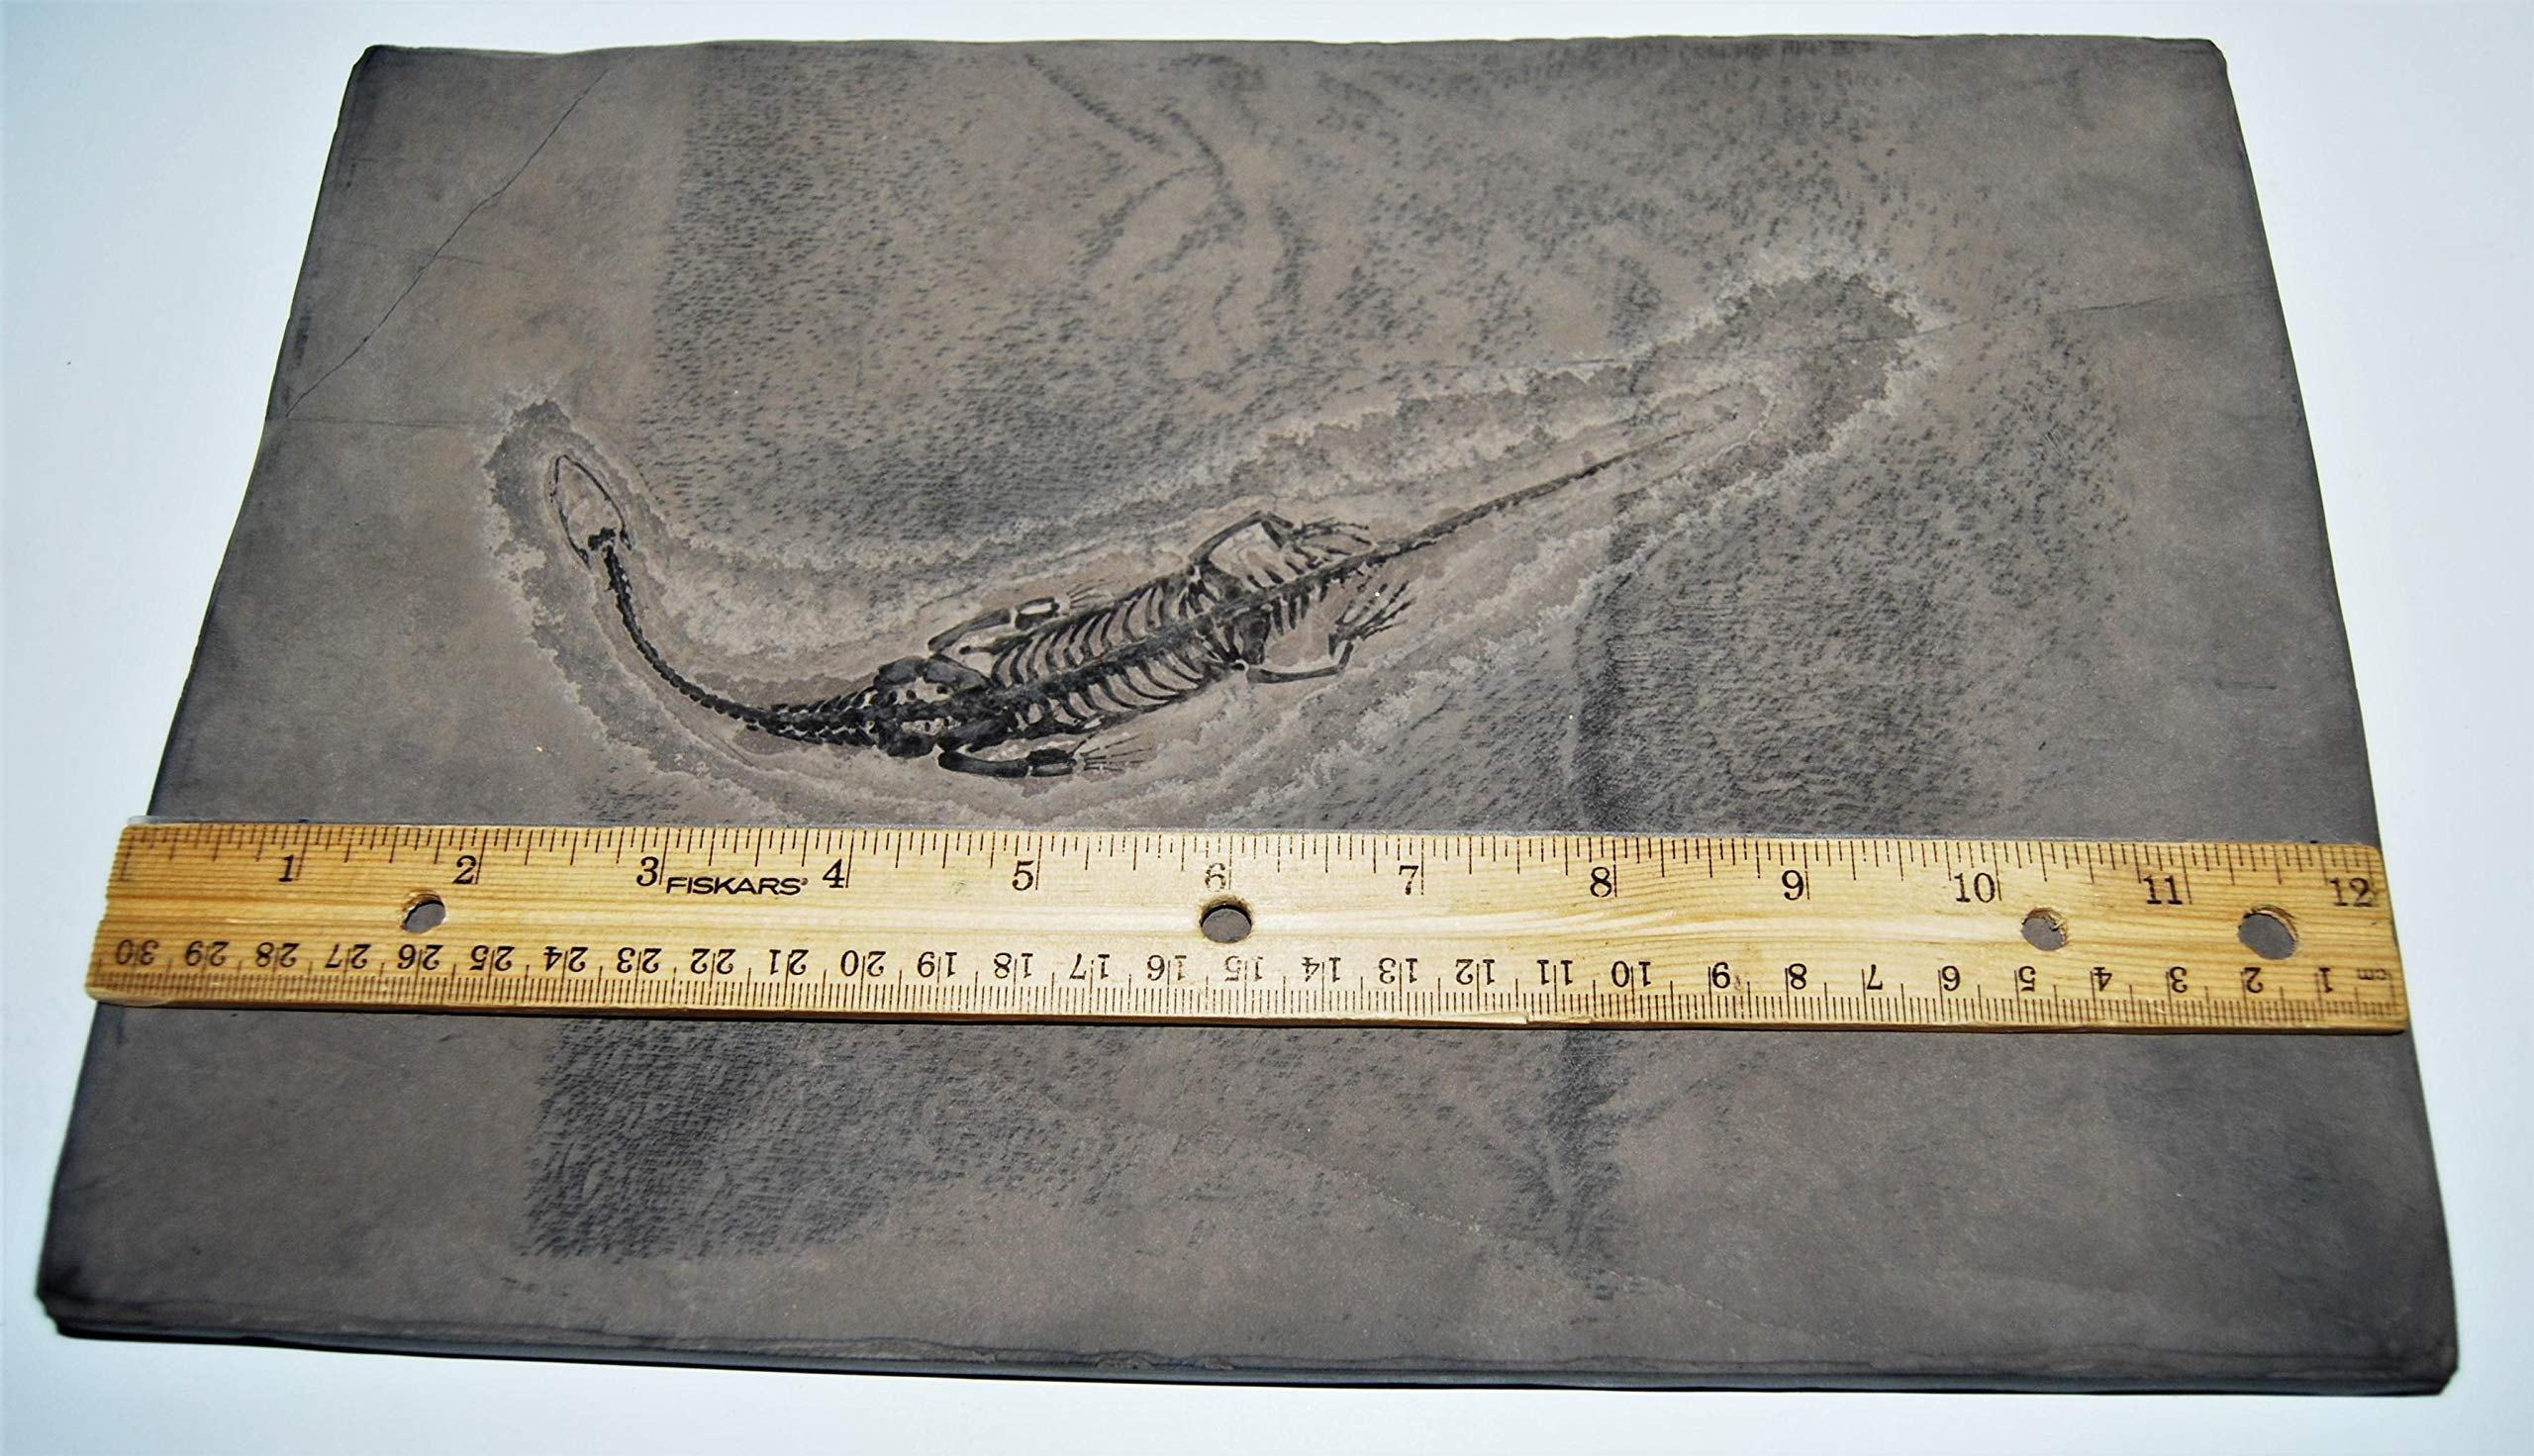 Keichousaurus Hui Dinosaur Unique and Amazing Fossil Rare #14313 83o by Fossils, Meteorites, & More (Image #3)